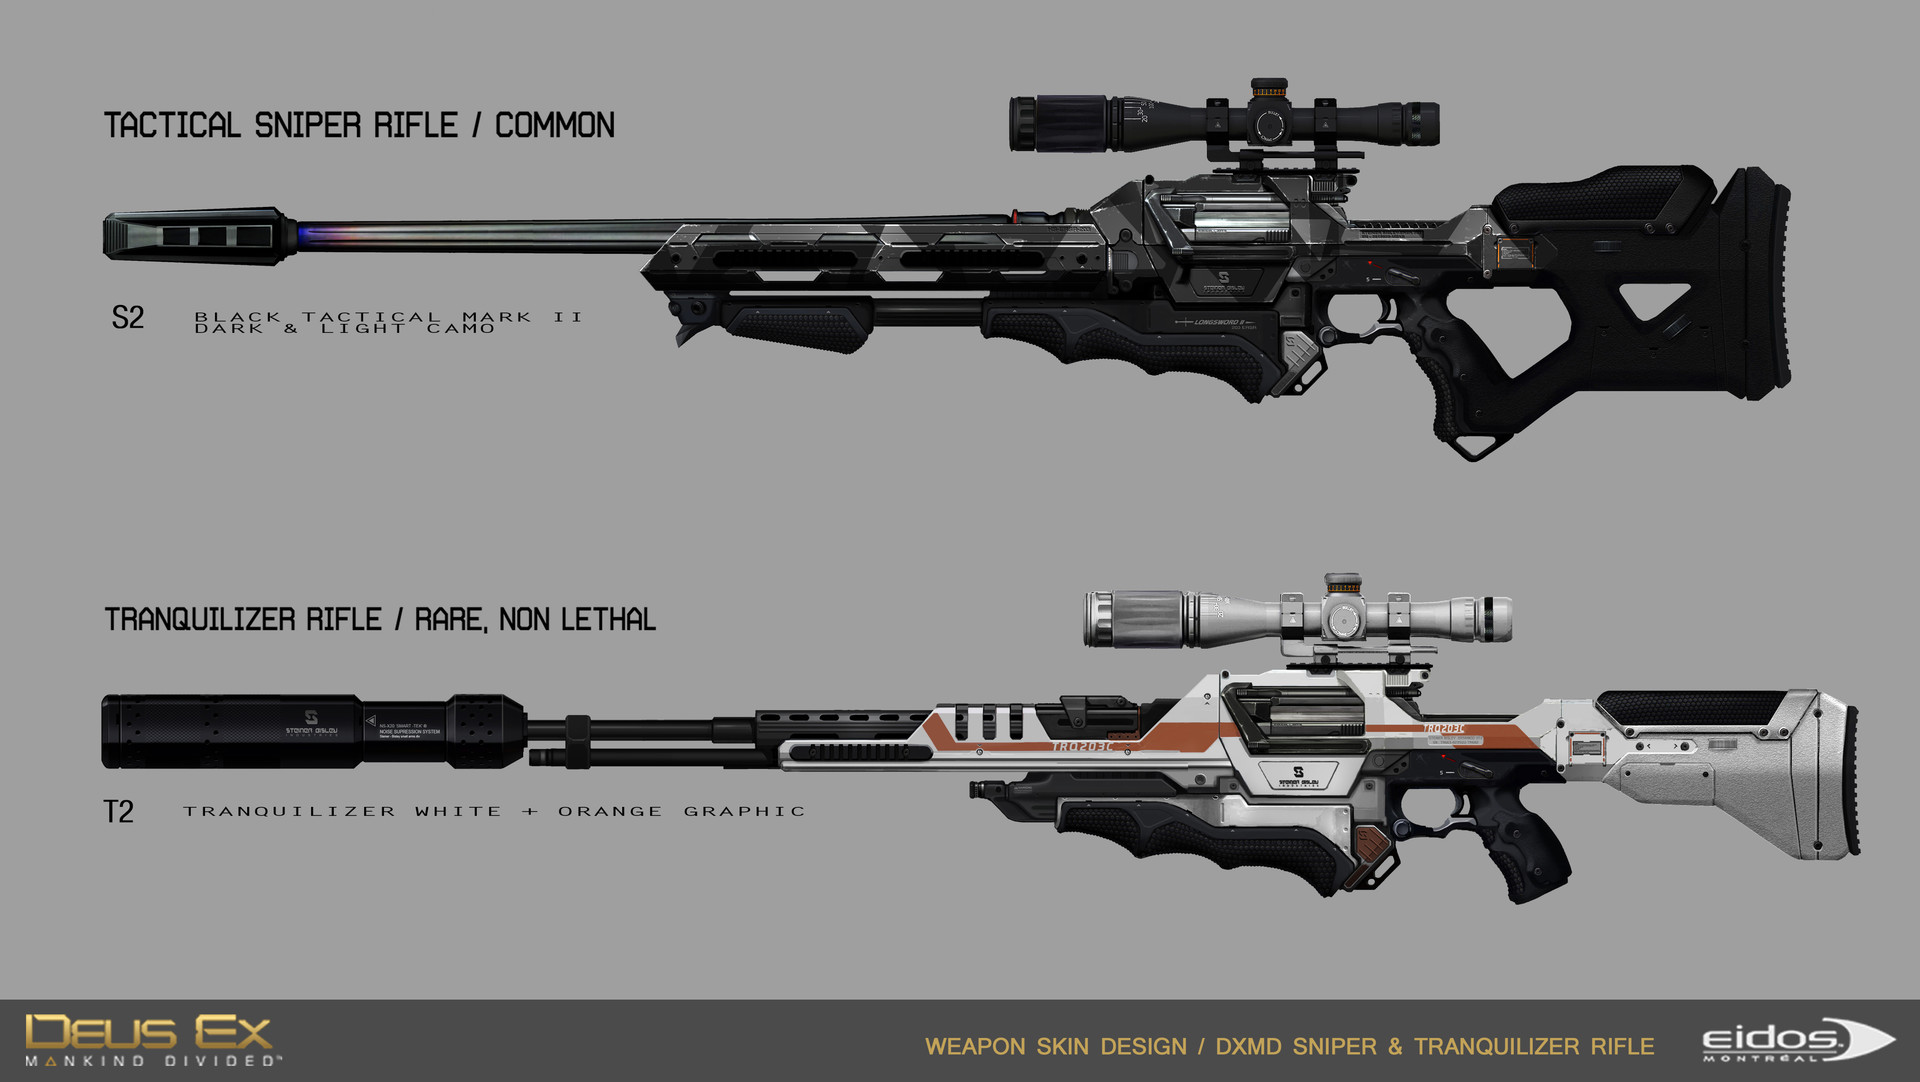 https://cdna.artstation.com/p/assets/images/images/003/725/414/large/martin-sabran-msab-tacticalsniper-tranquilizerrifle-skin-v02-approved.jpg?1476838971